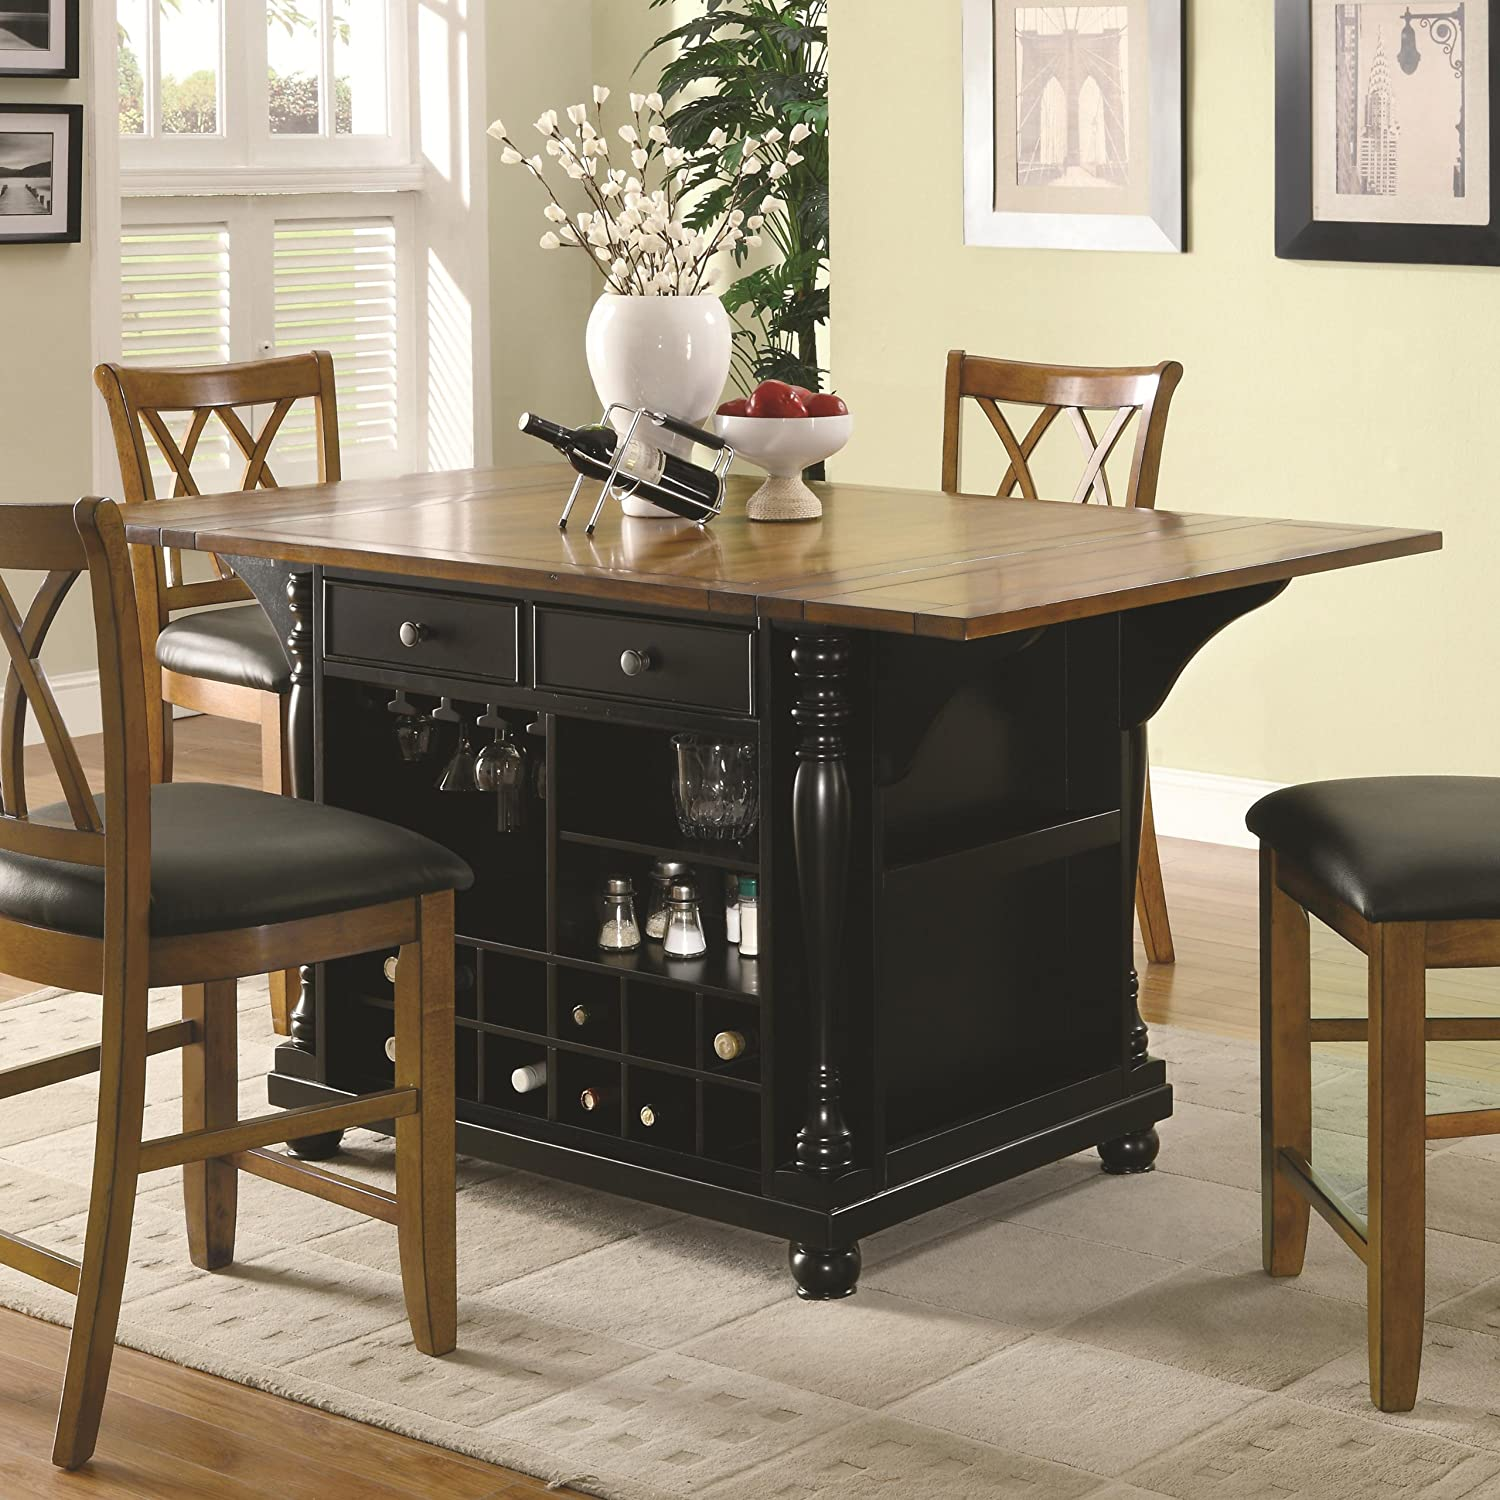 Merveilleux Amazon.com: Coaster 102270 CO Furniture Piece, Cherry Black: Kitchen U0026  Dining